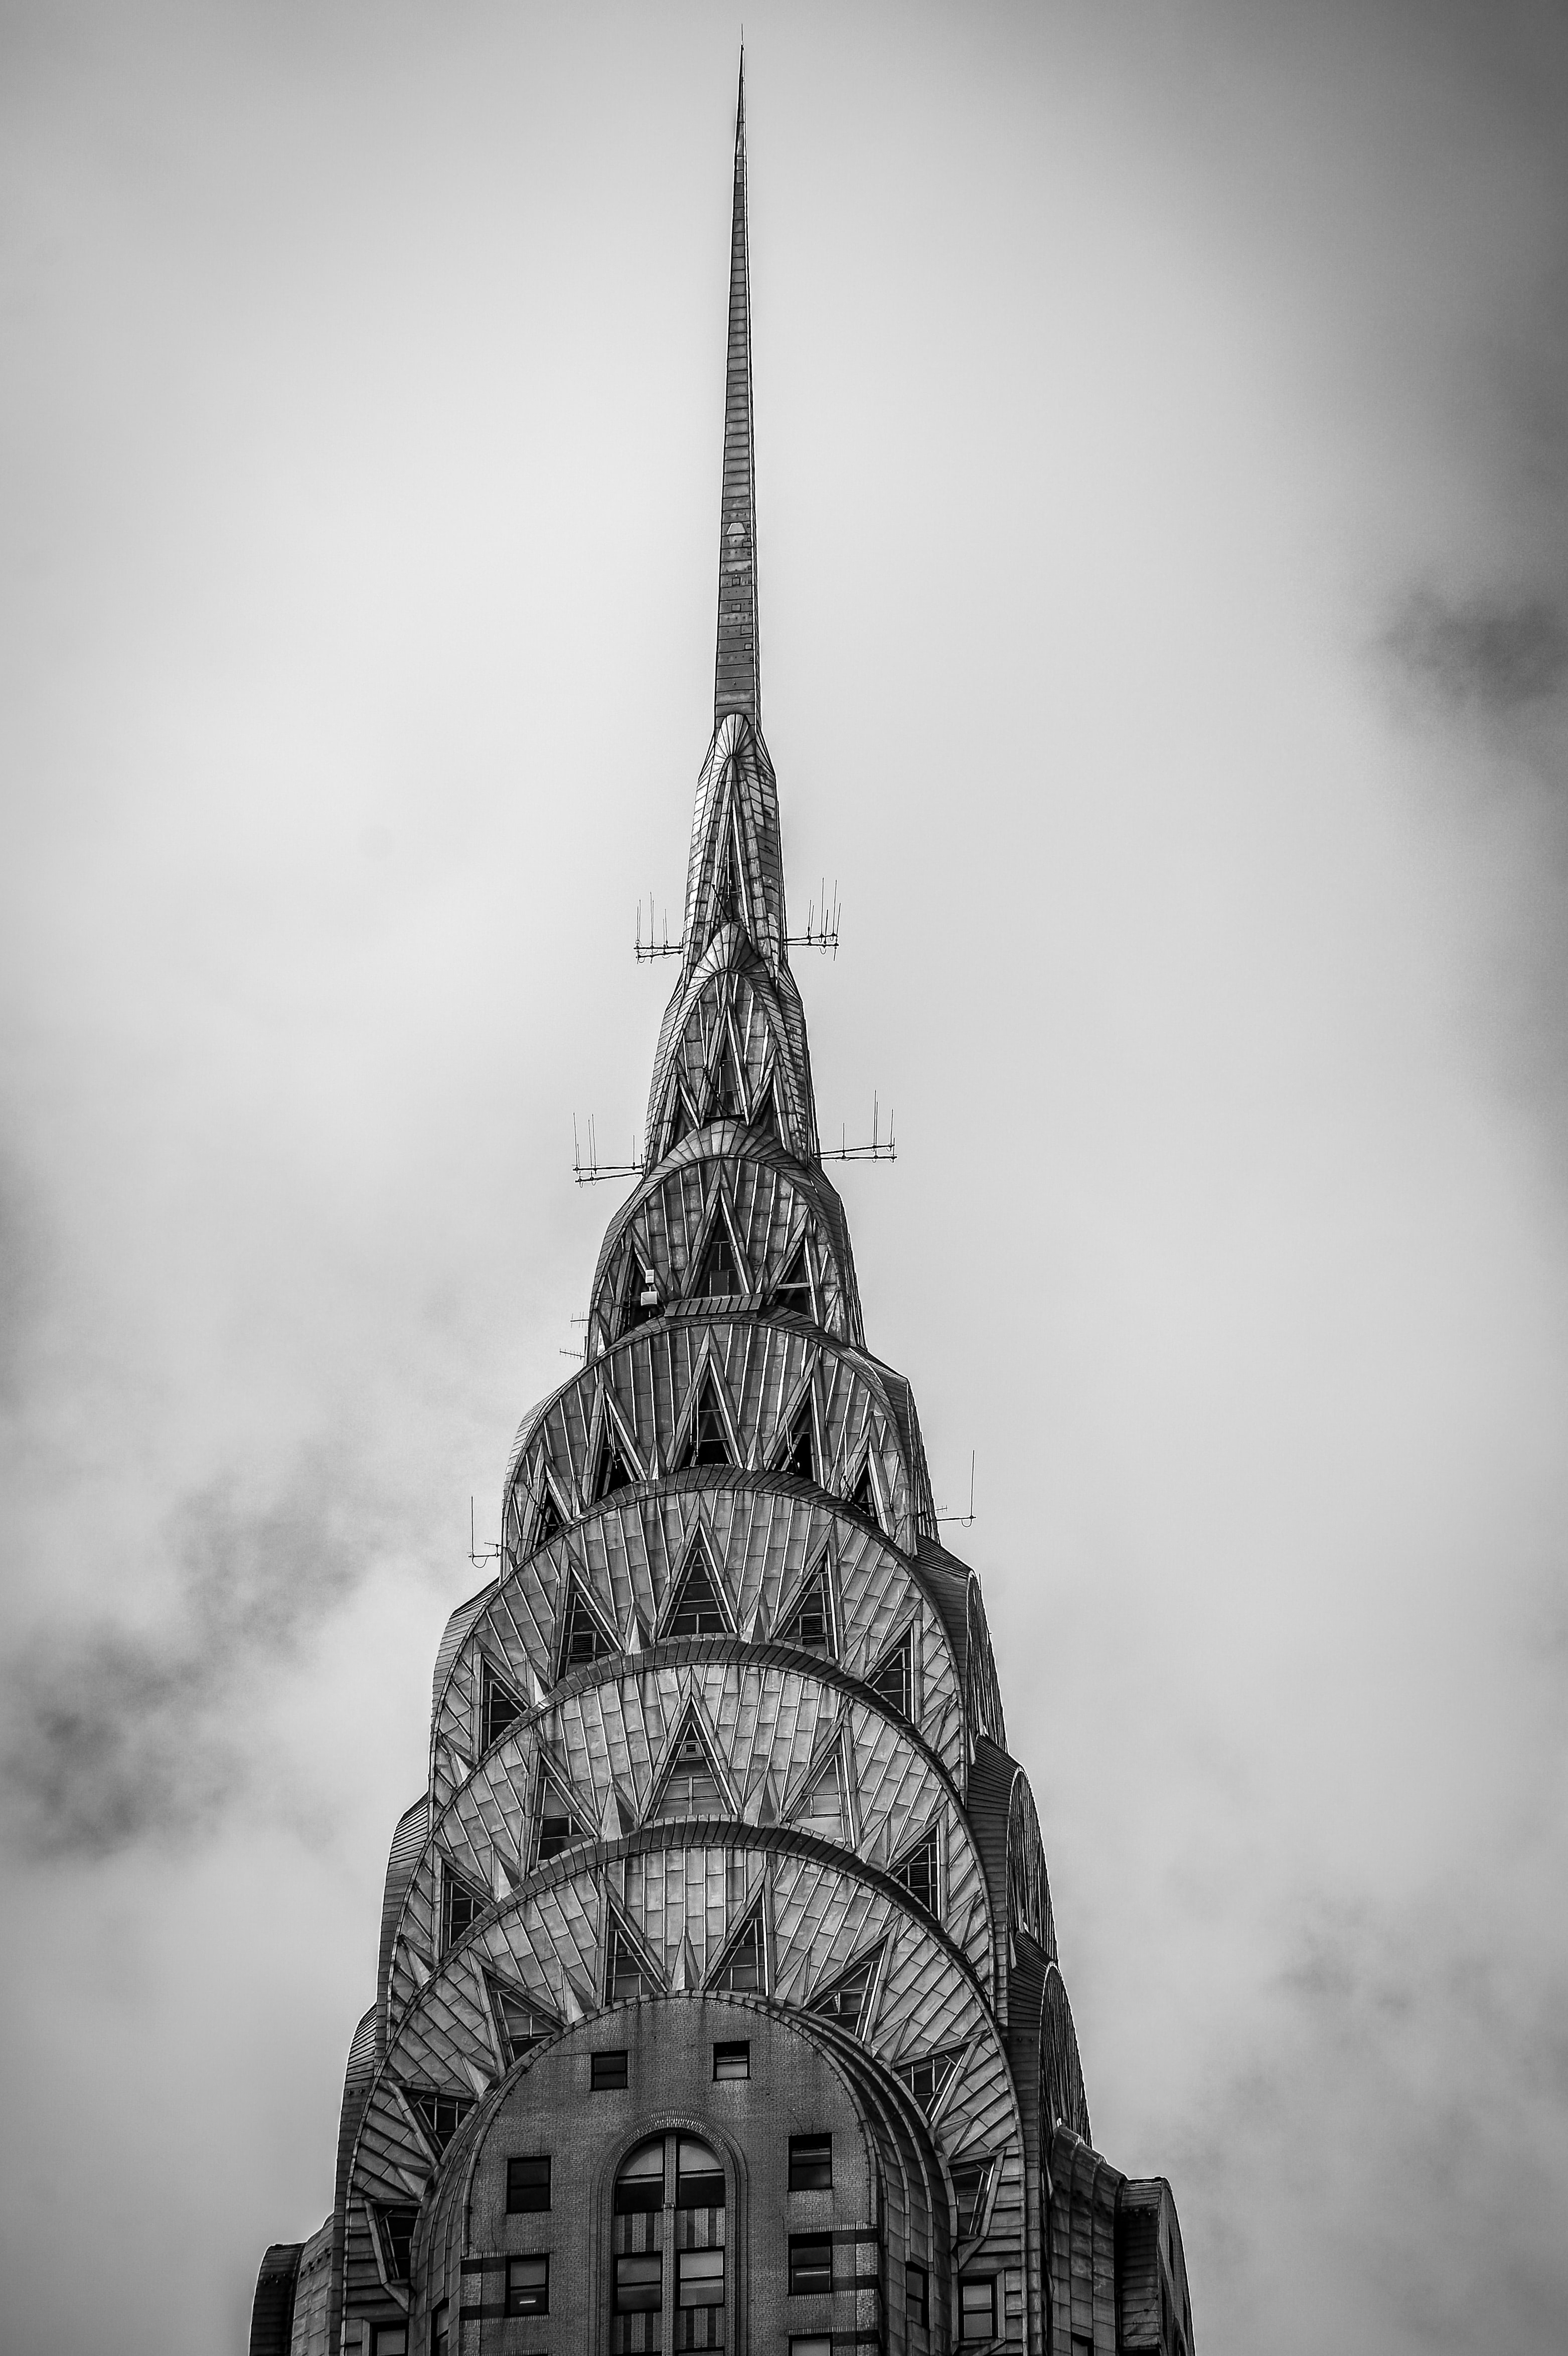 Black and white photo of the top of the Chrysler Building in New York City